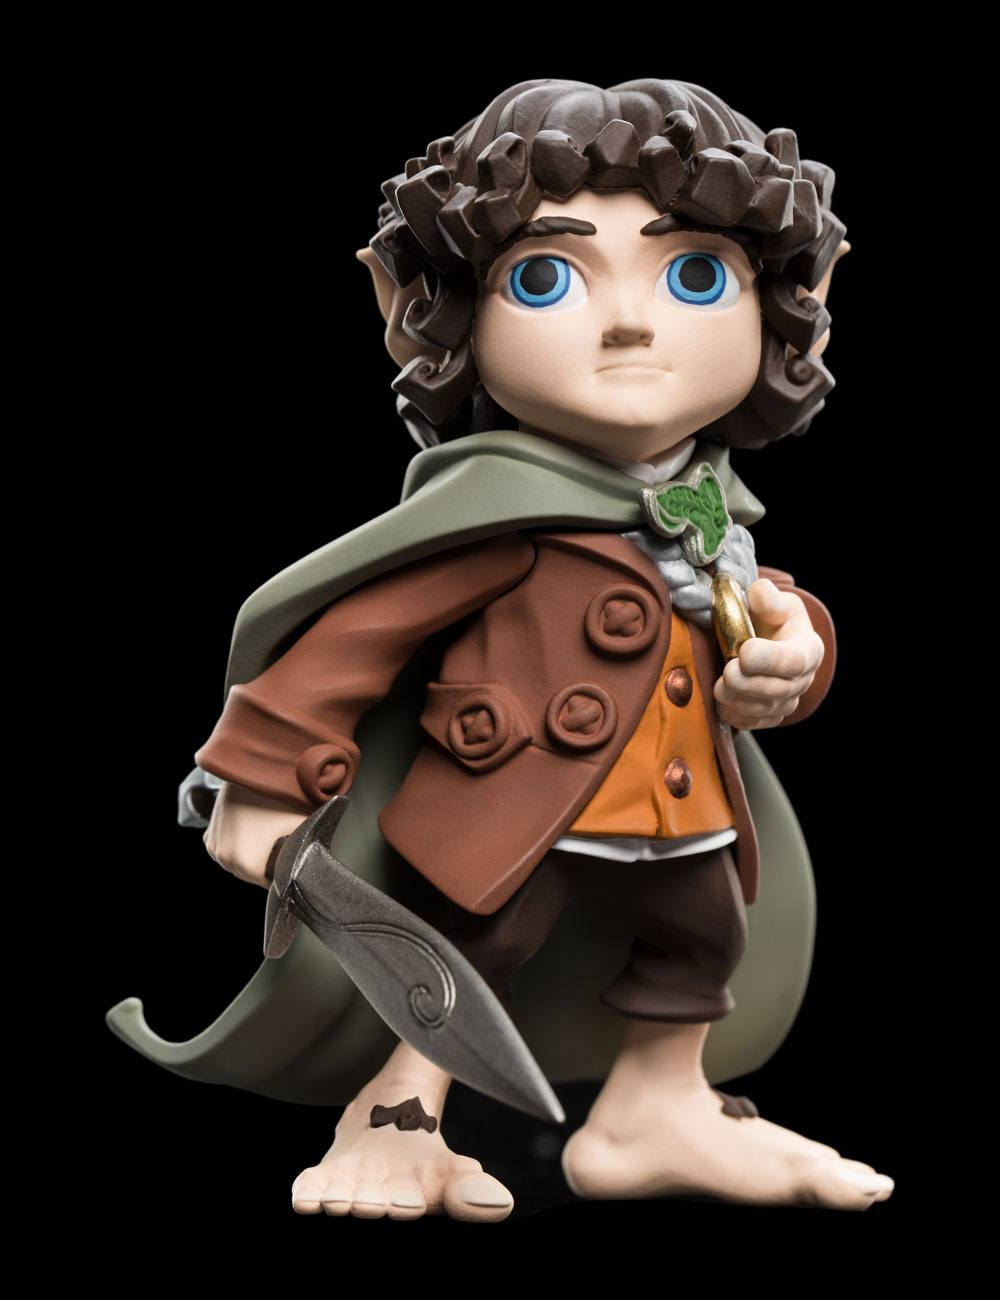 Weta The Lord of the Rings Frodo Baggins Mini Epics Vinyl Figure Statue